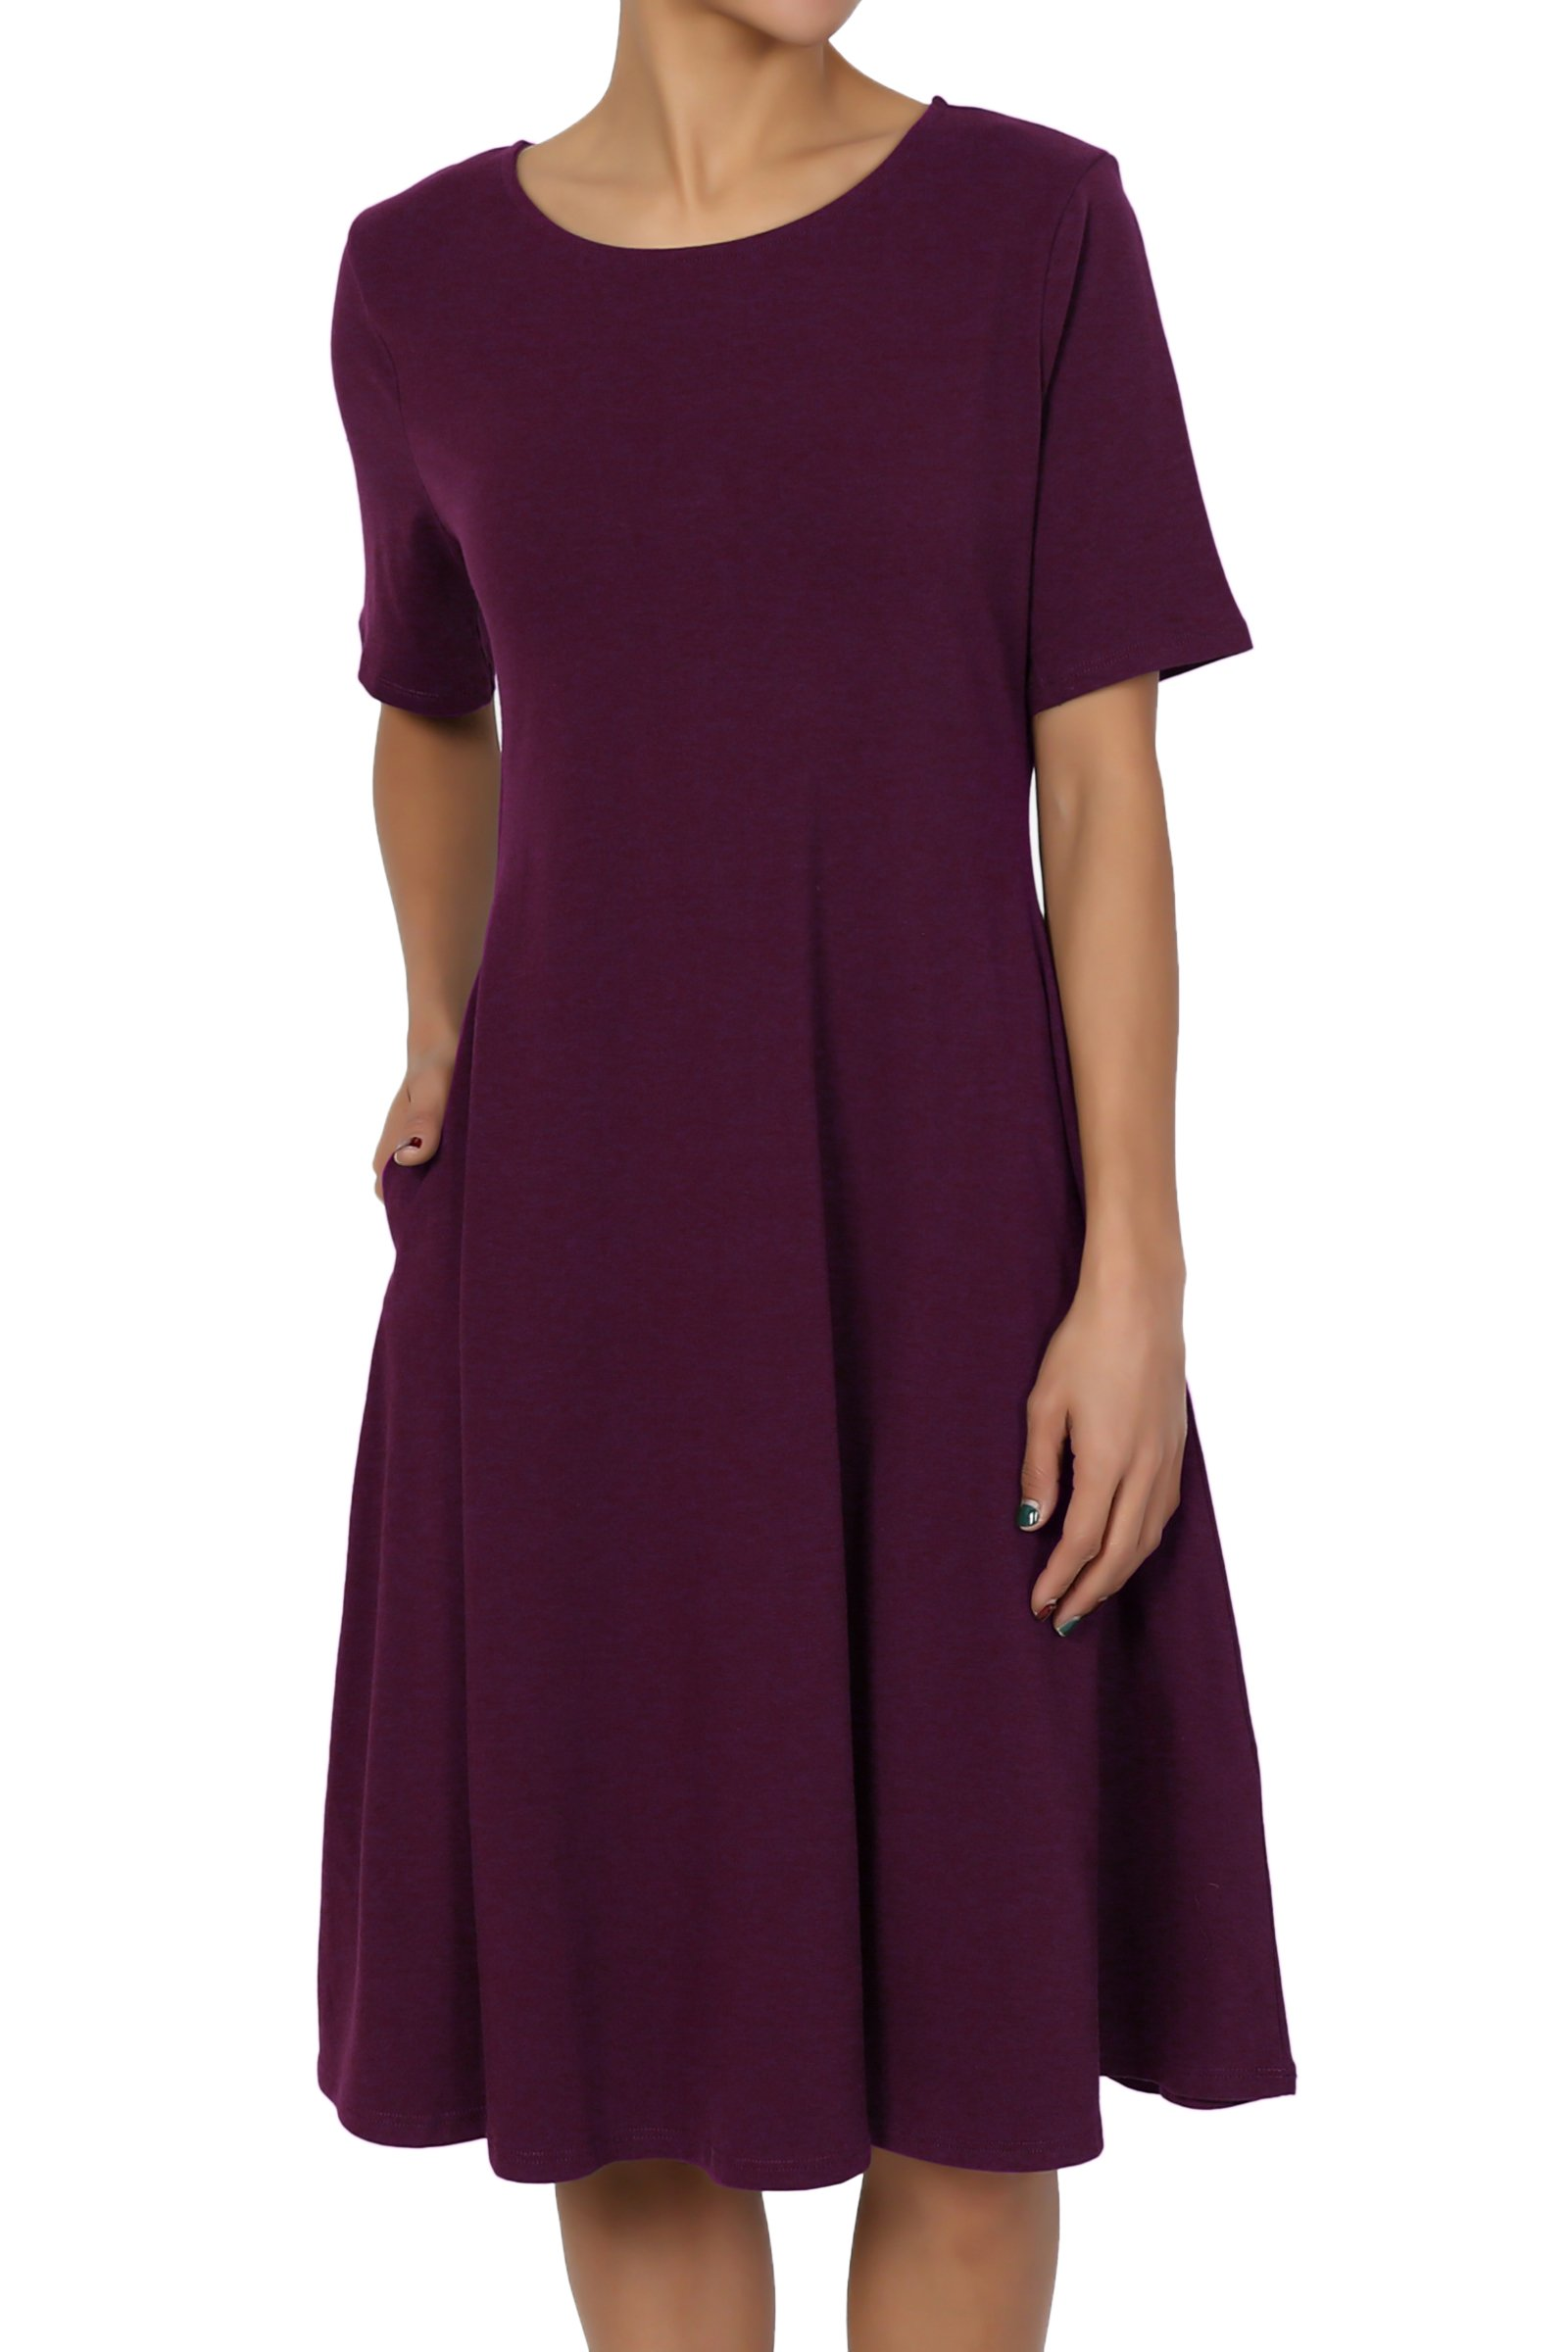 TheMogan Women's Short Sleeve Pocket Stretch Cotton Fit & Flare Dress Dark Plum 2XL